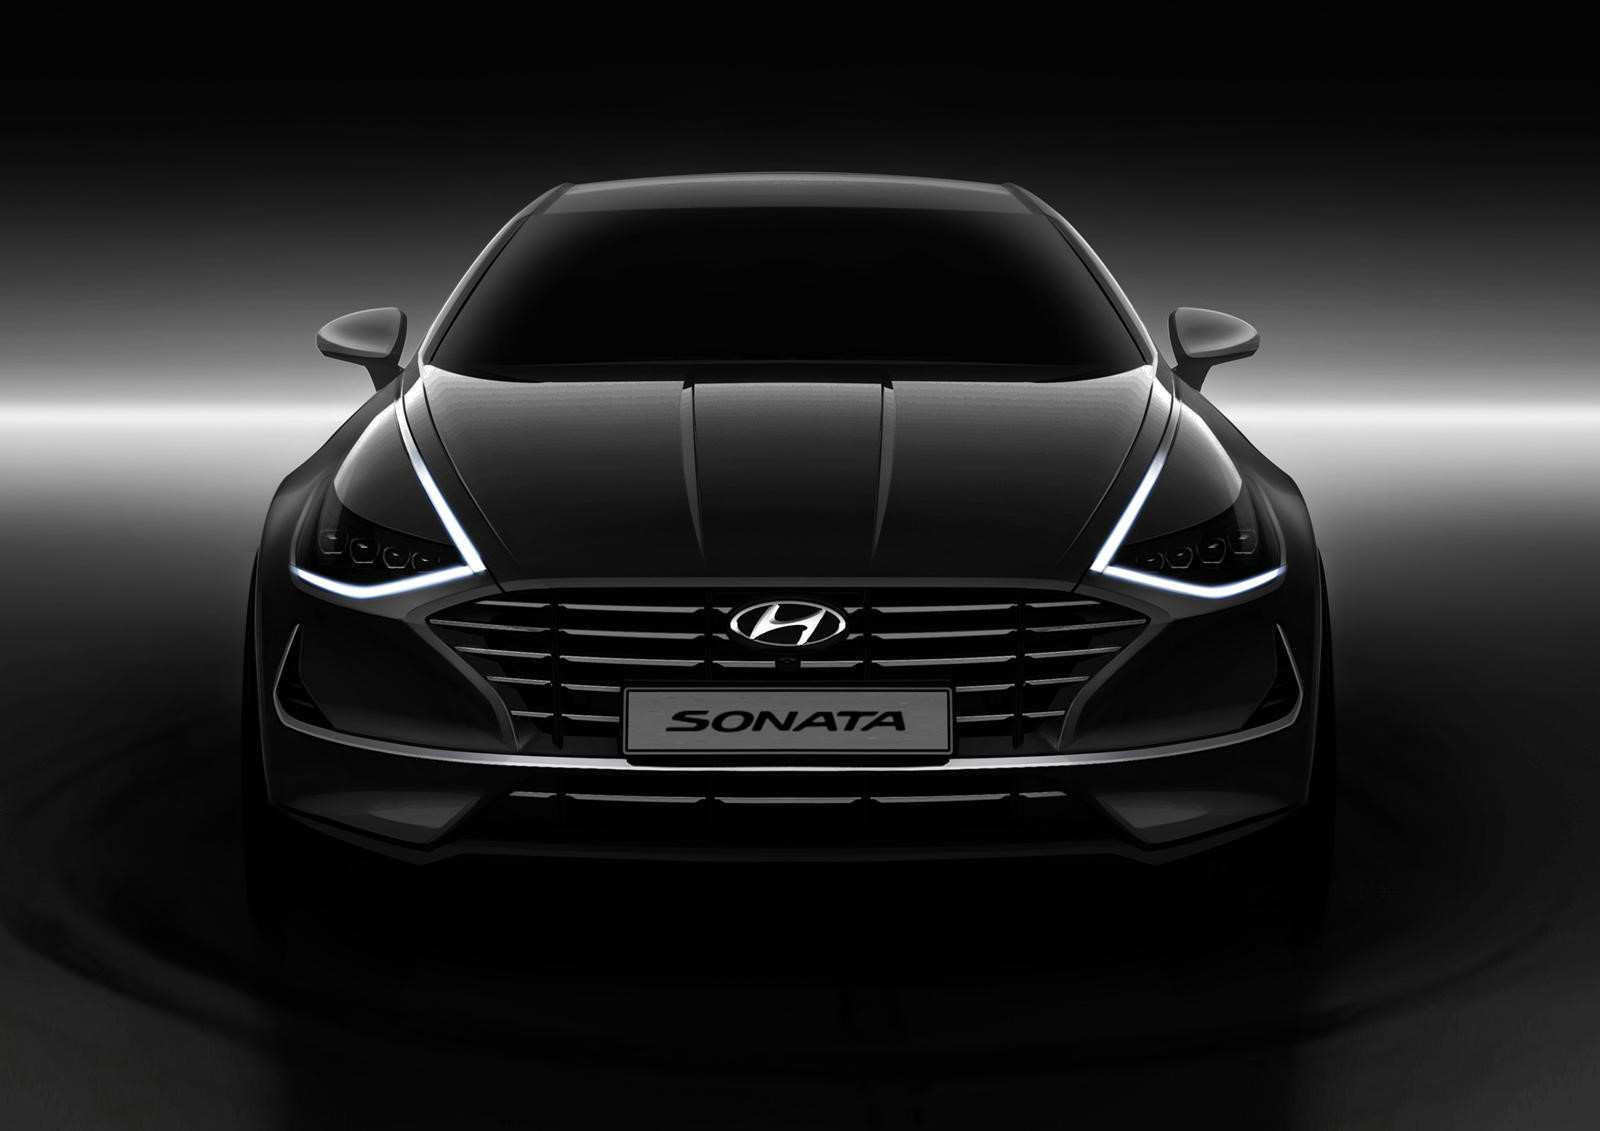 75 Concept of Price Of 2020 Hyundai Sonata Specs and Review by Price Of 2020 Hyundai Sonata